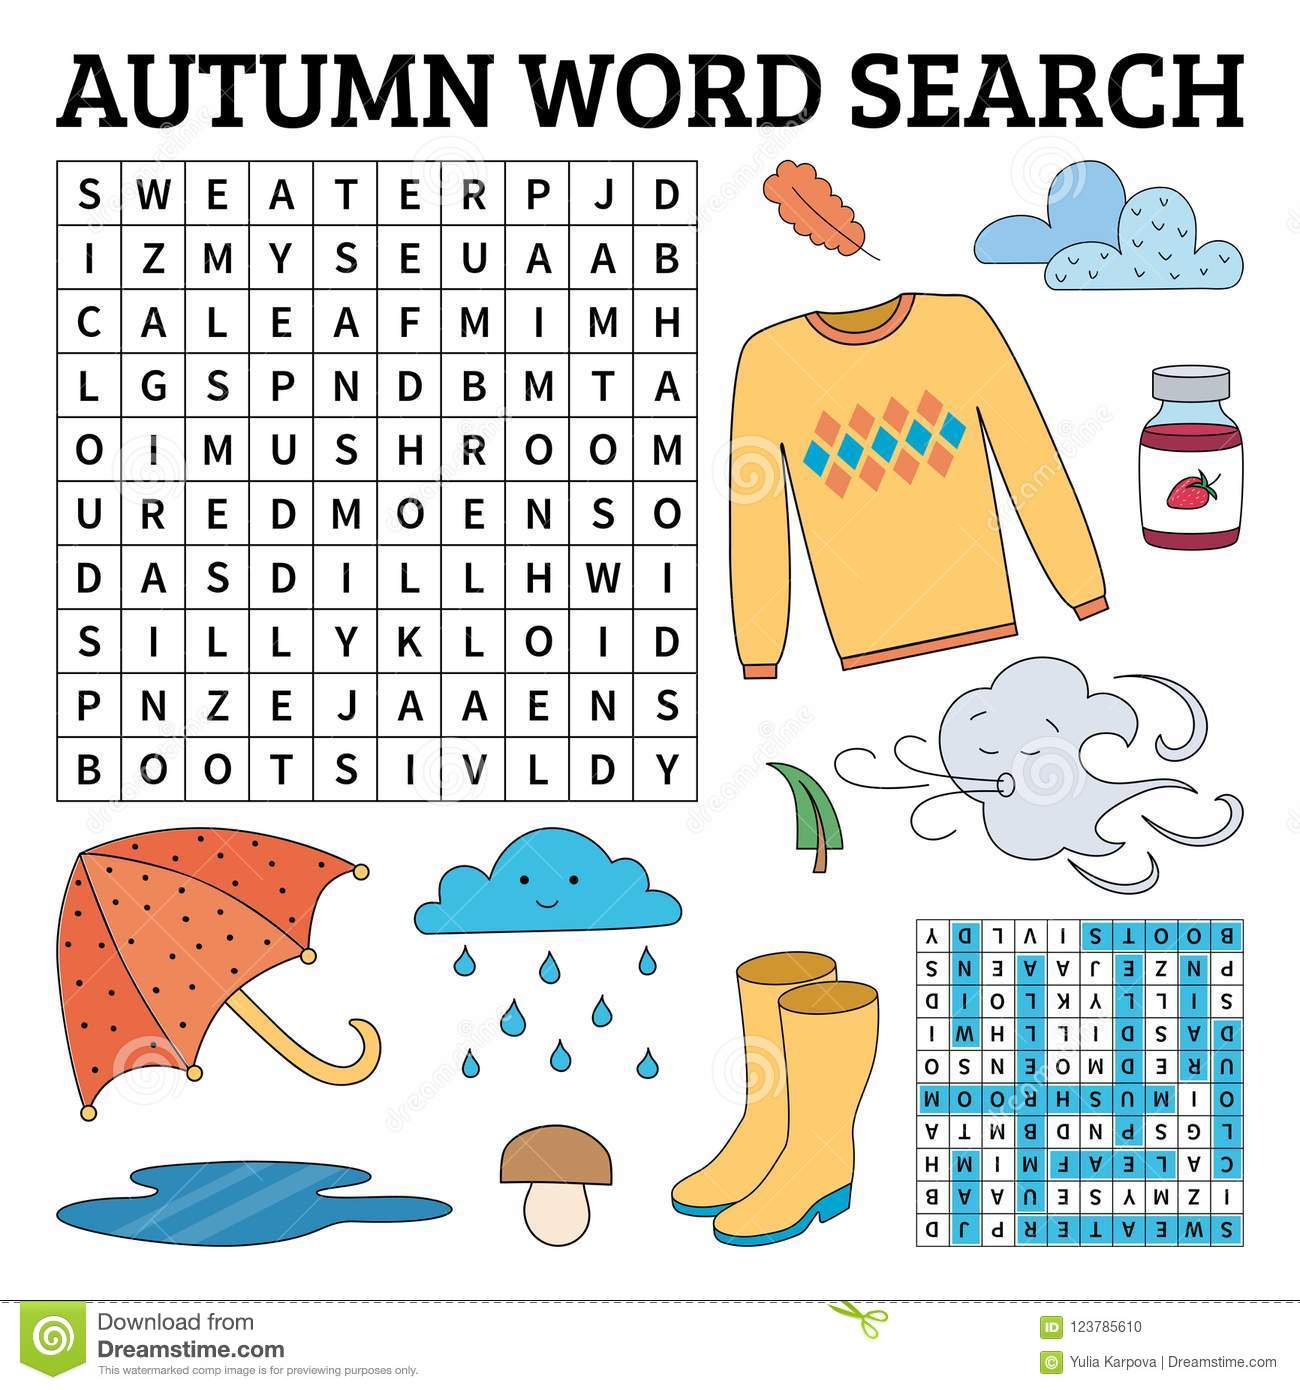 Learn English With An Autumn Word Search Game For Kids